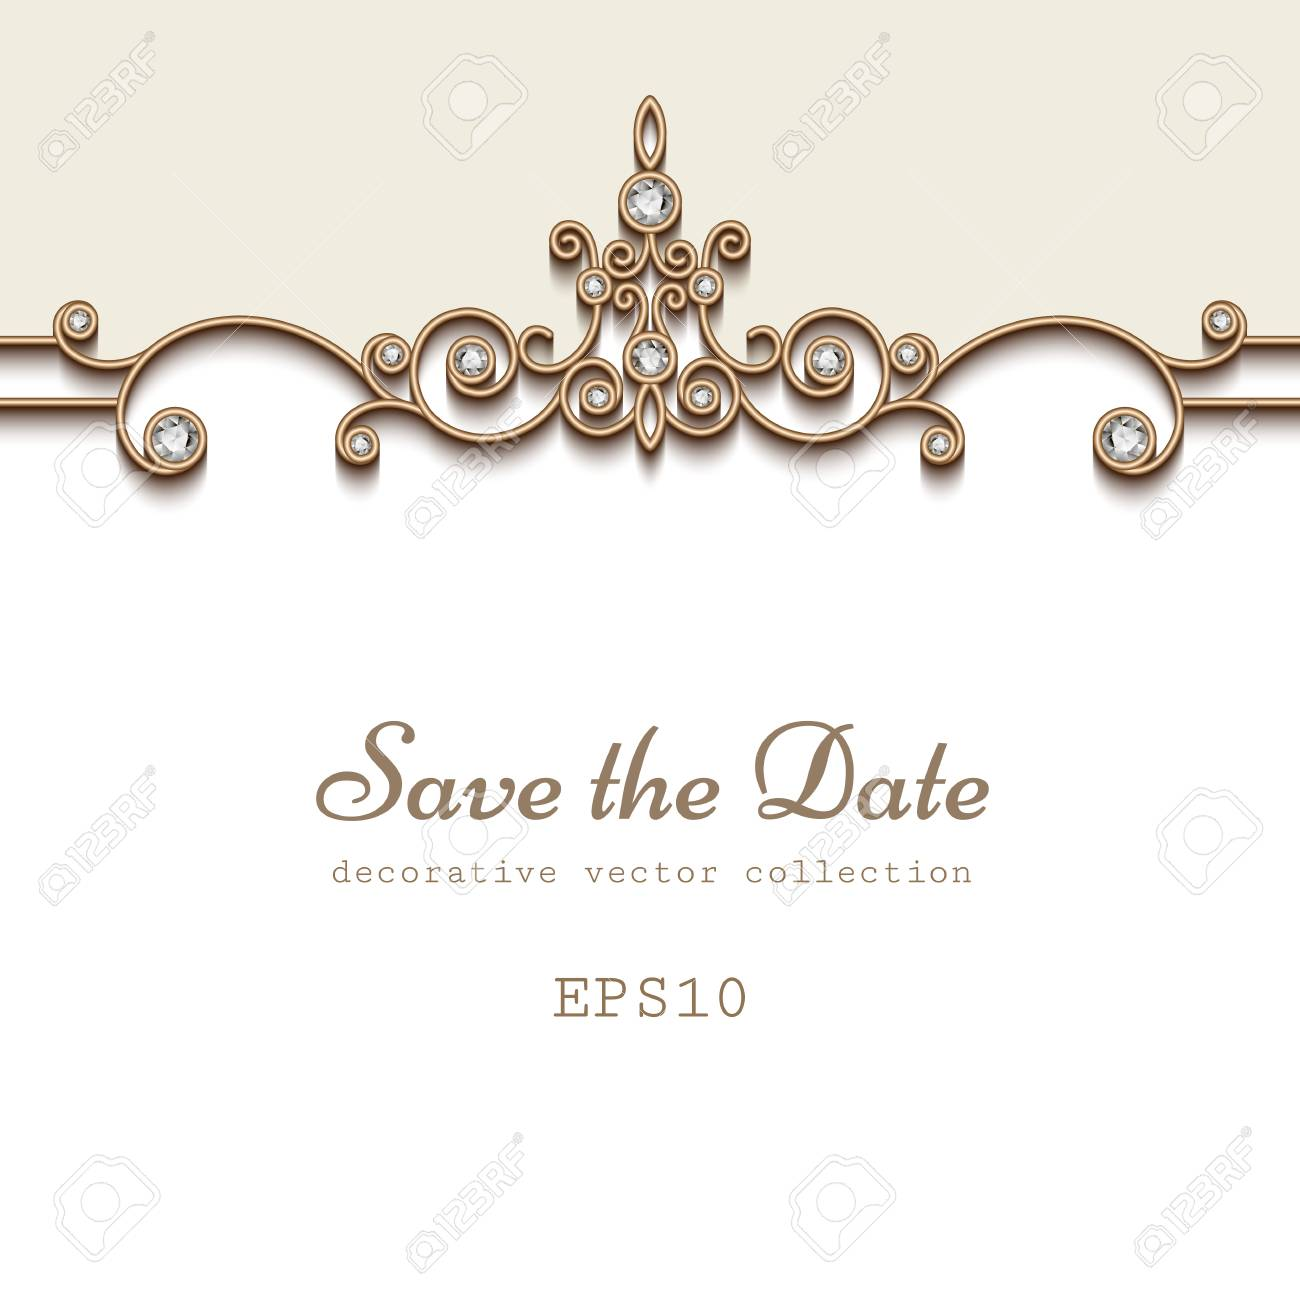 elegant save the date card with jewelry diamond decoration vintage